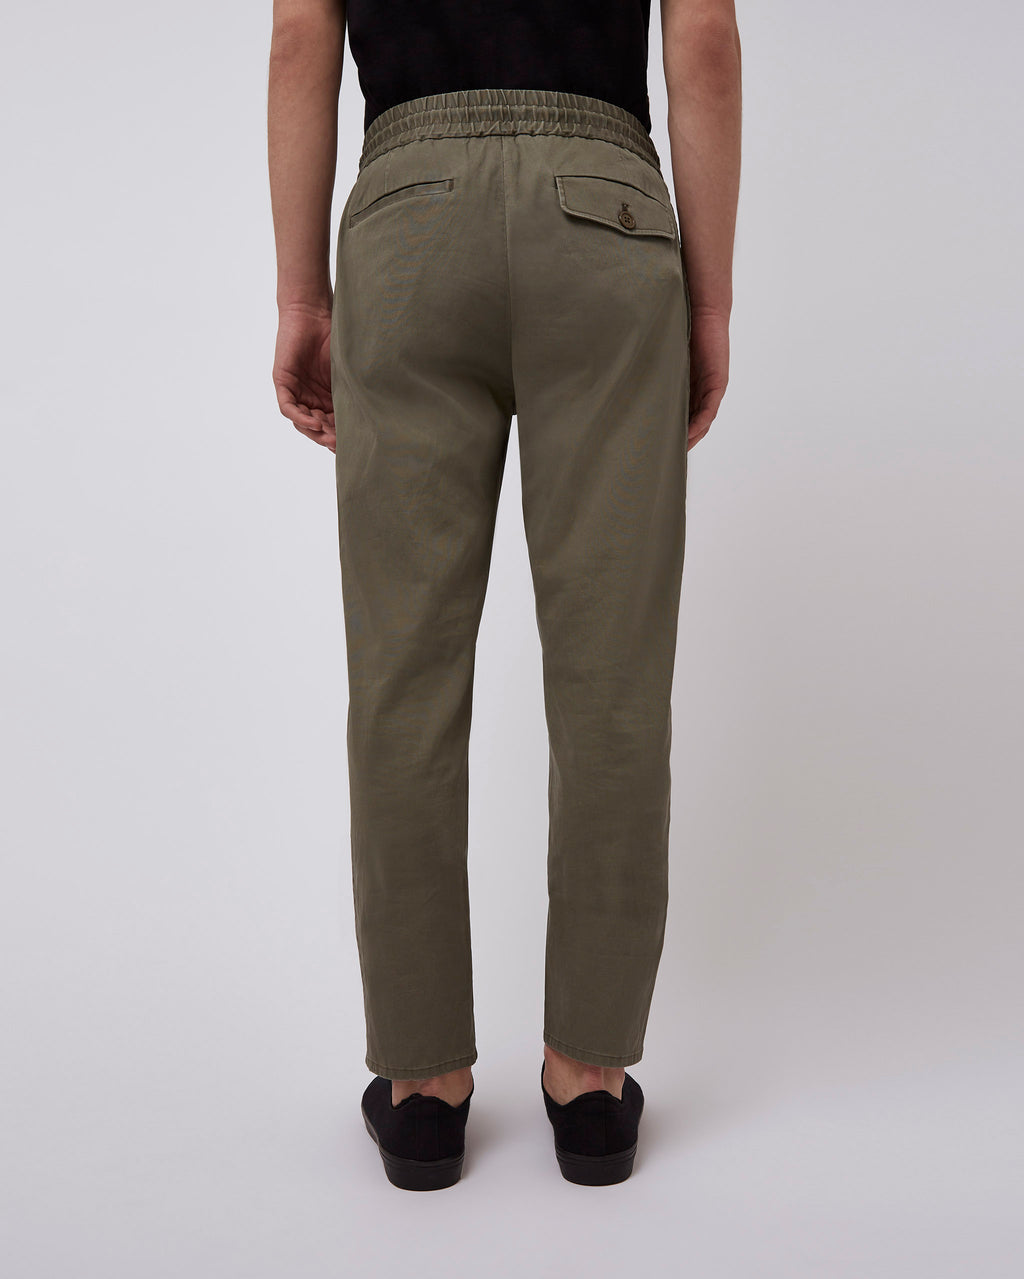 The Damon Pant in Olive Drab